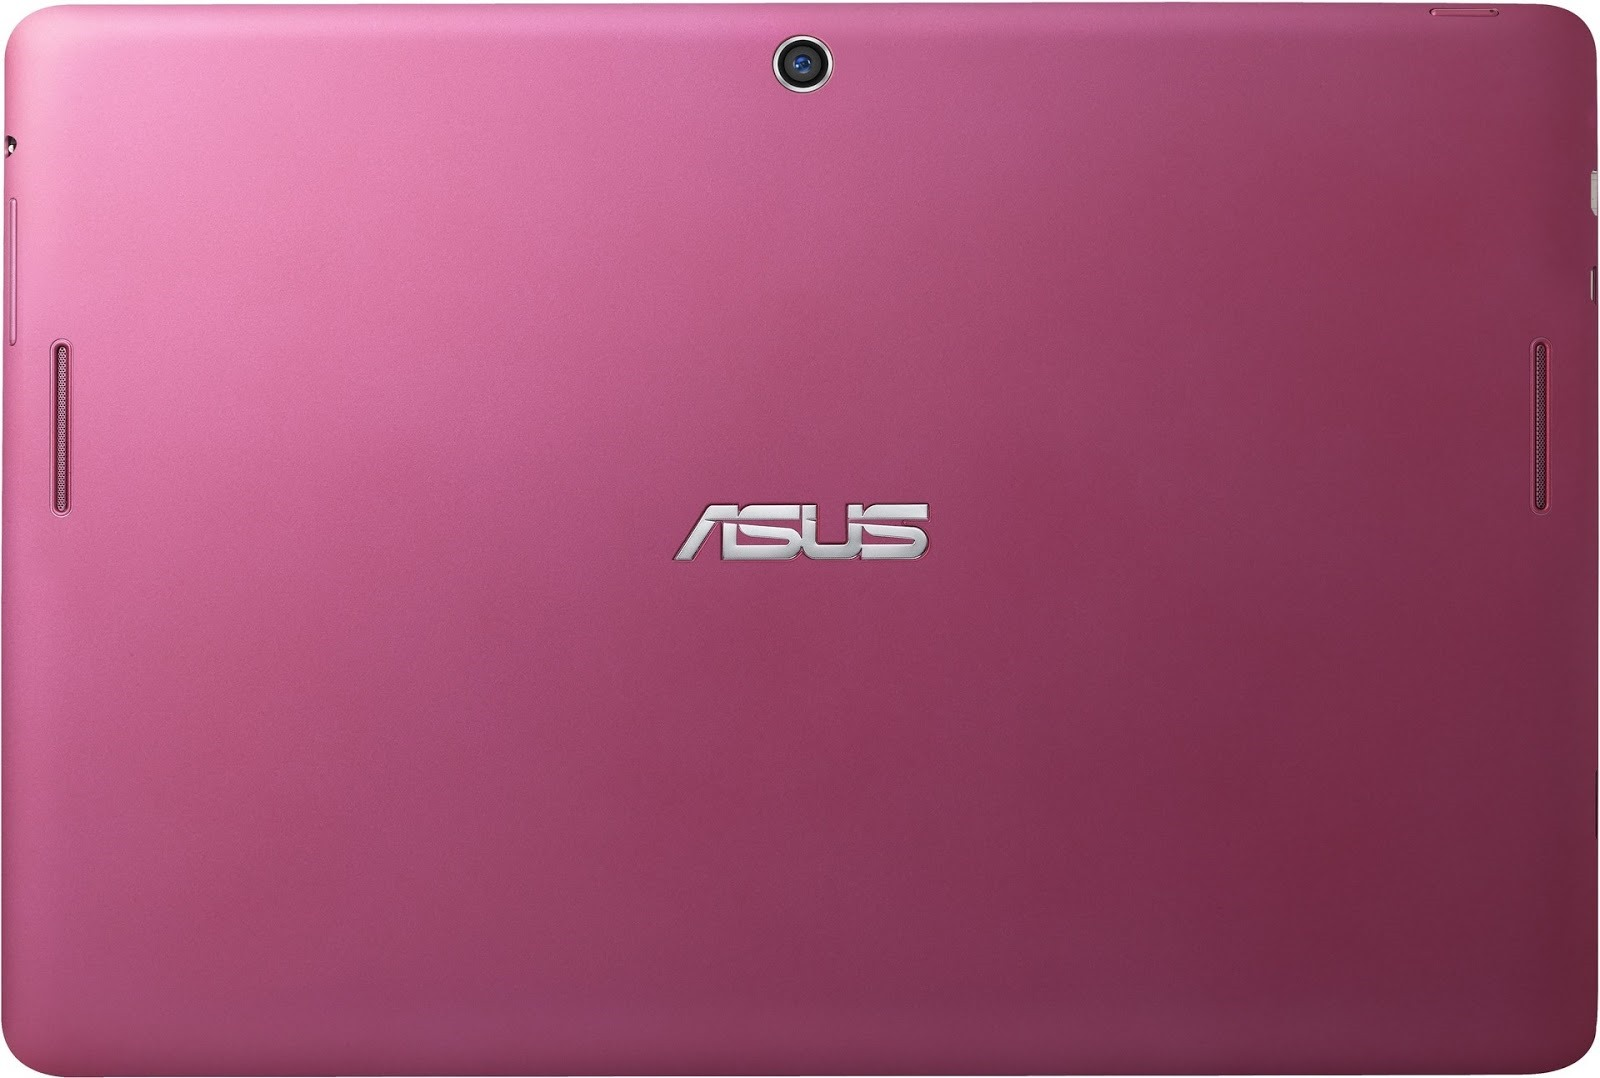 "ASUS MeMO Pad Smart 10 - tablet z 10"" ekranem Full HD, kamer� 13 Mpix i LTE"